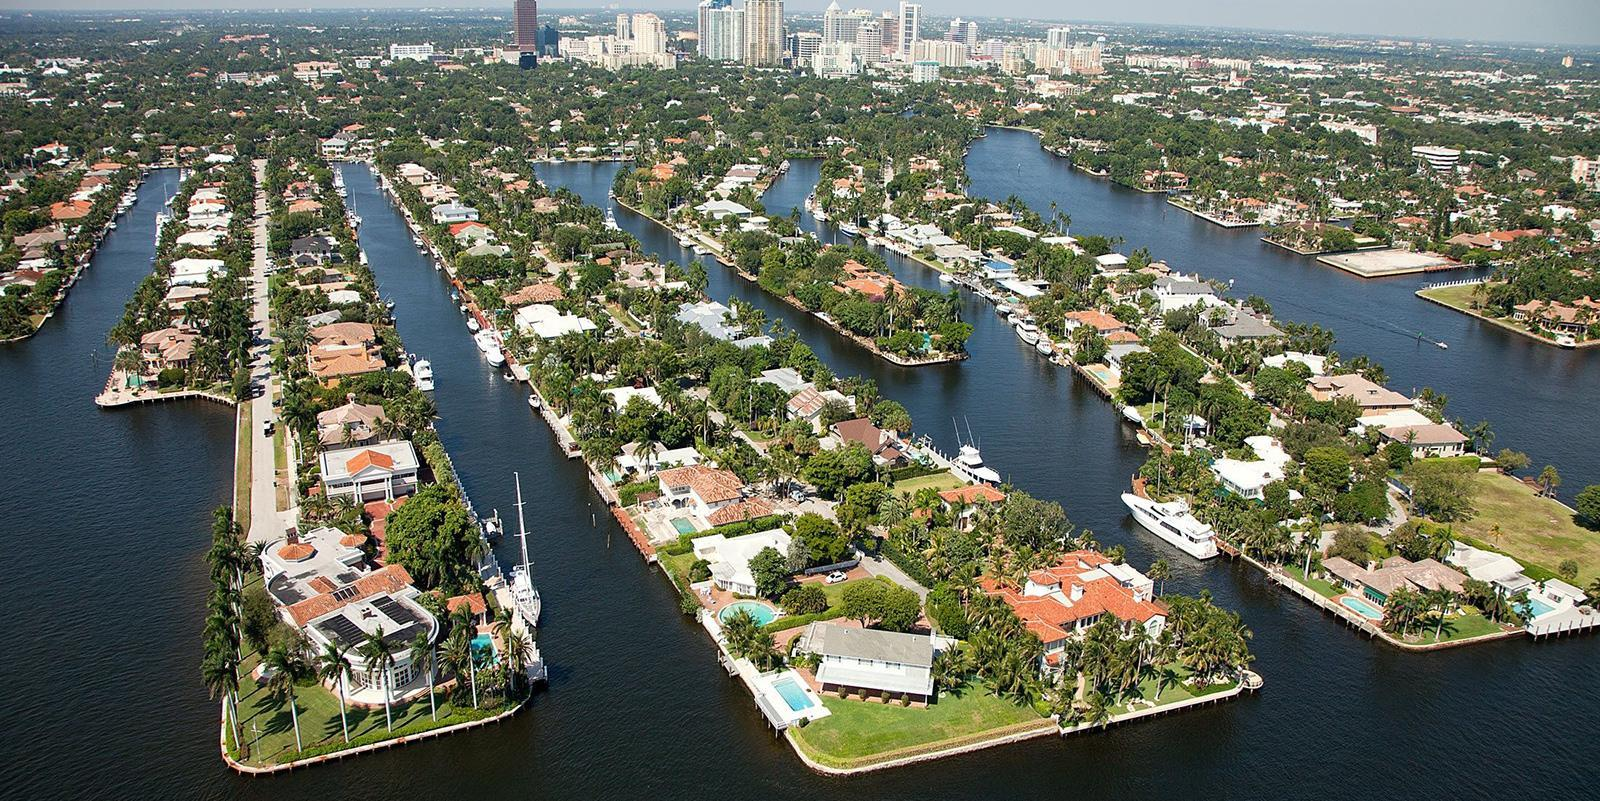 Las Olas Homes for Sale in Fort Lauderdale